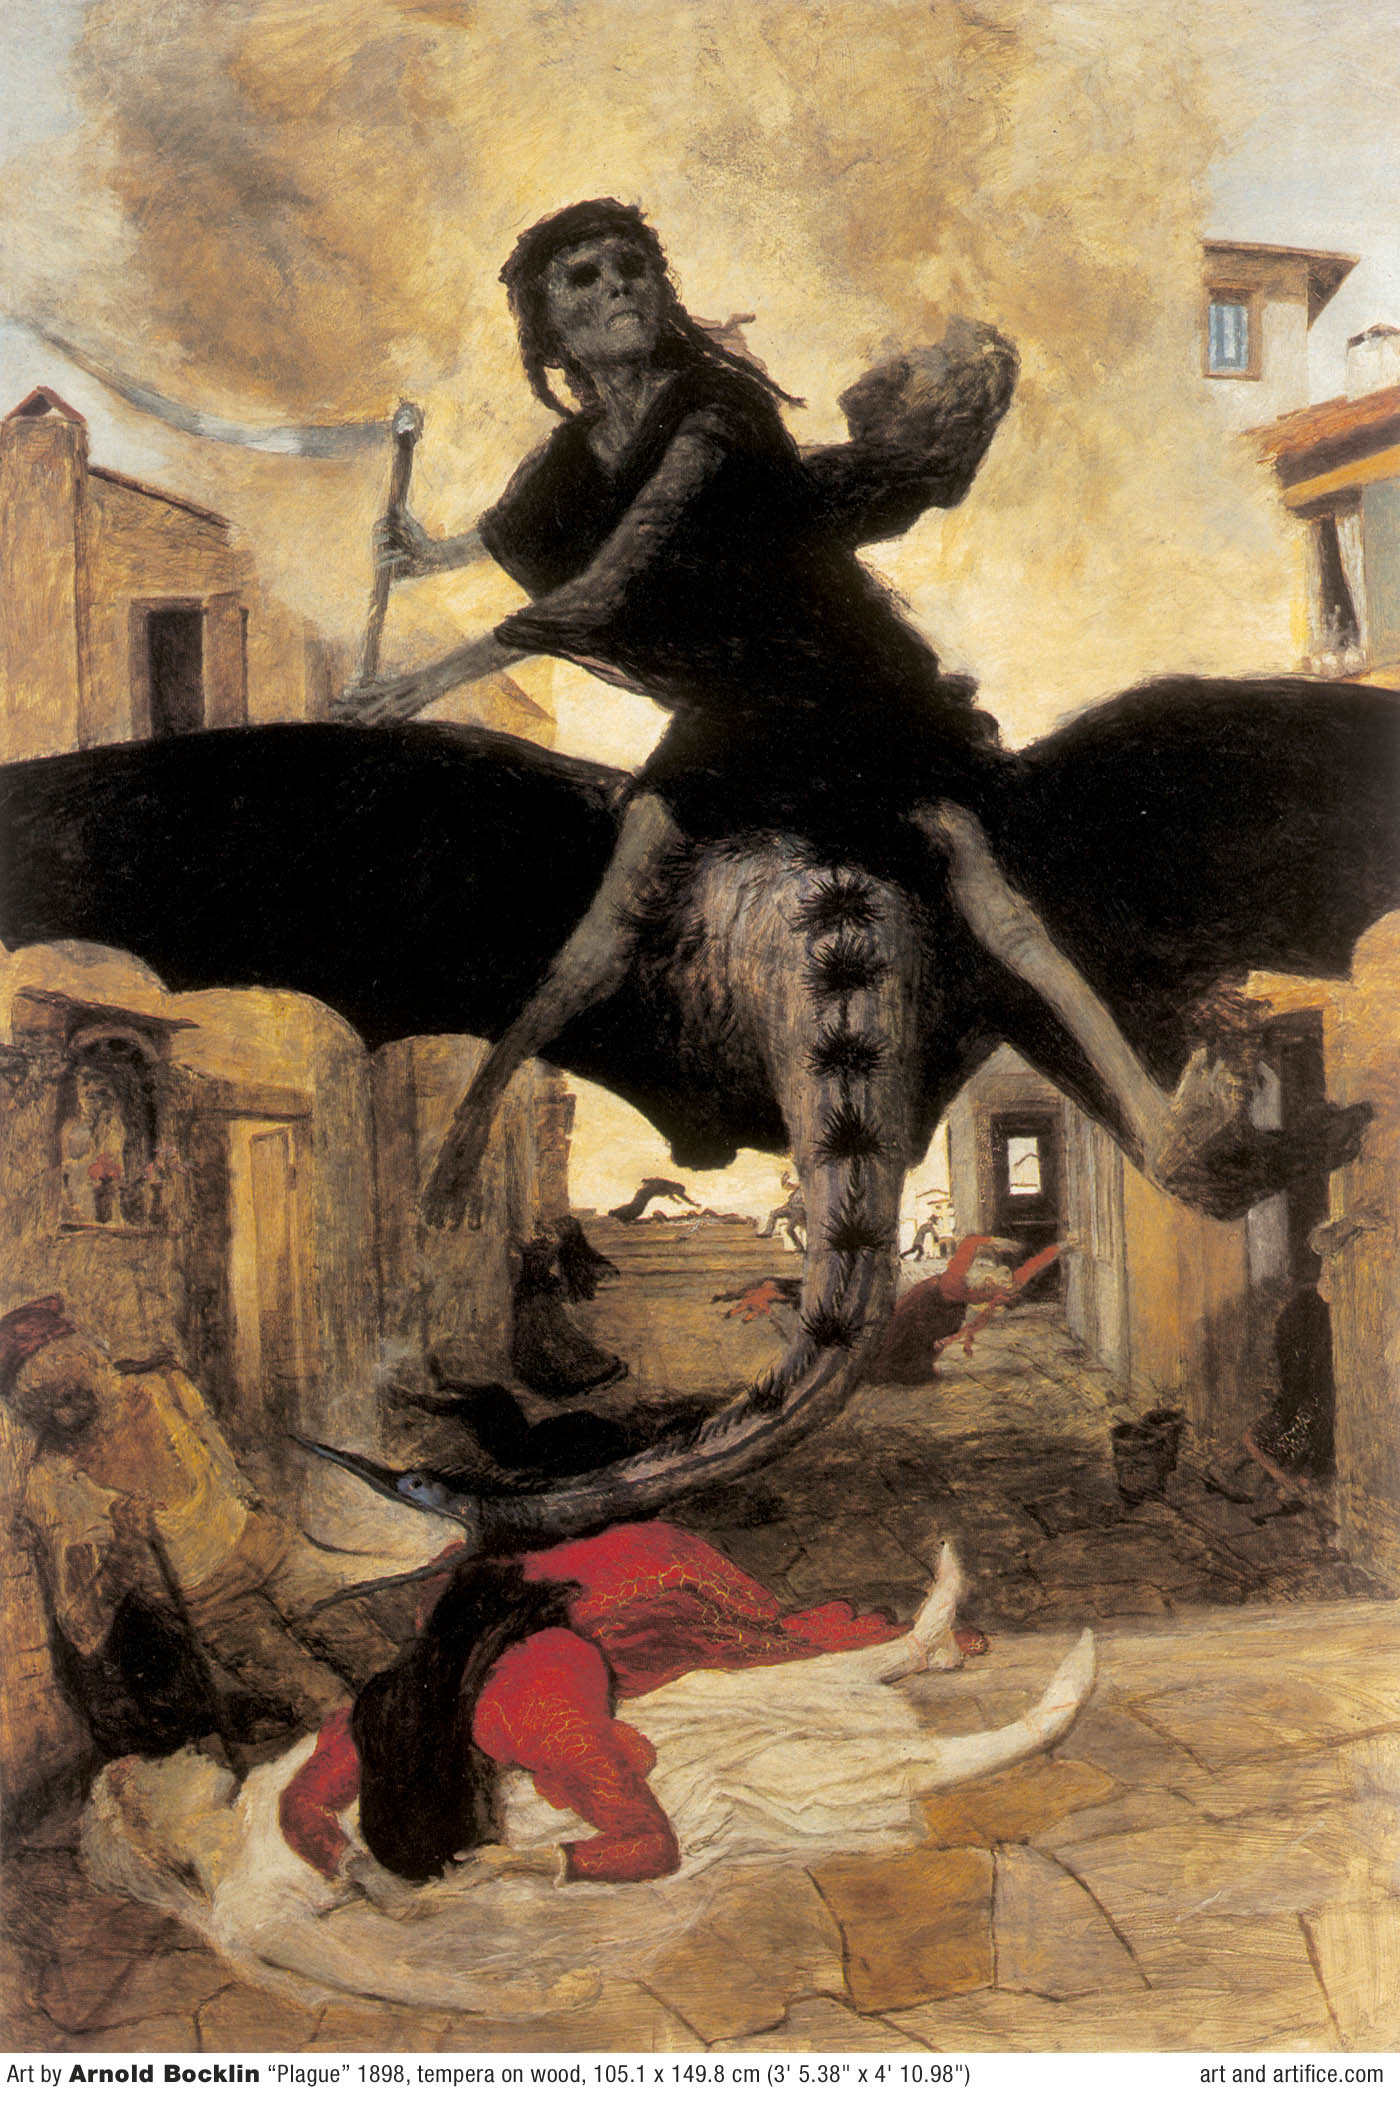 The Plague by Arnold Bocklin 1898